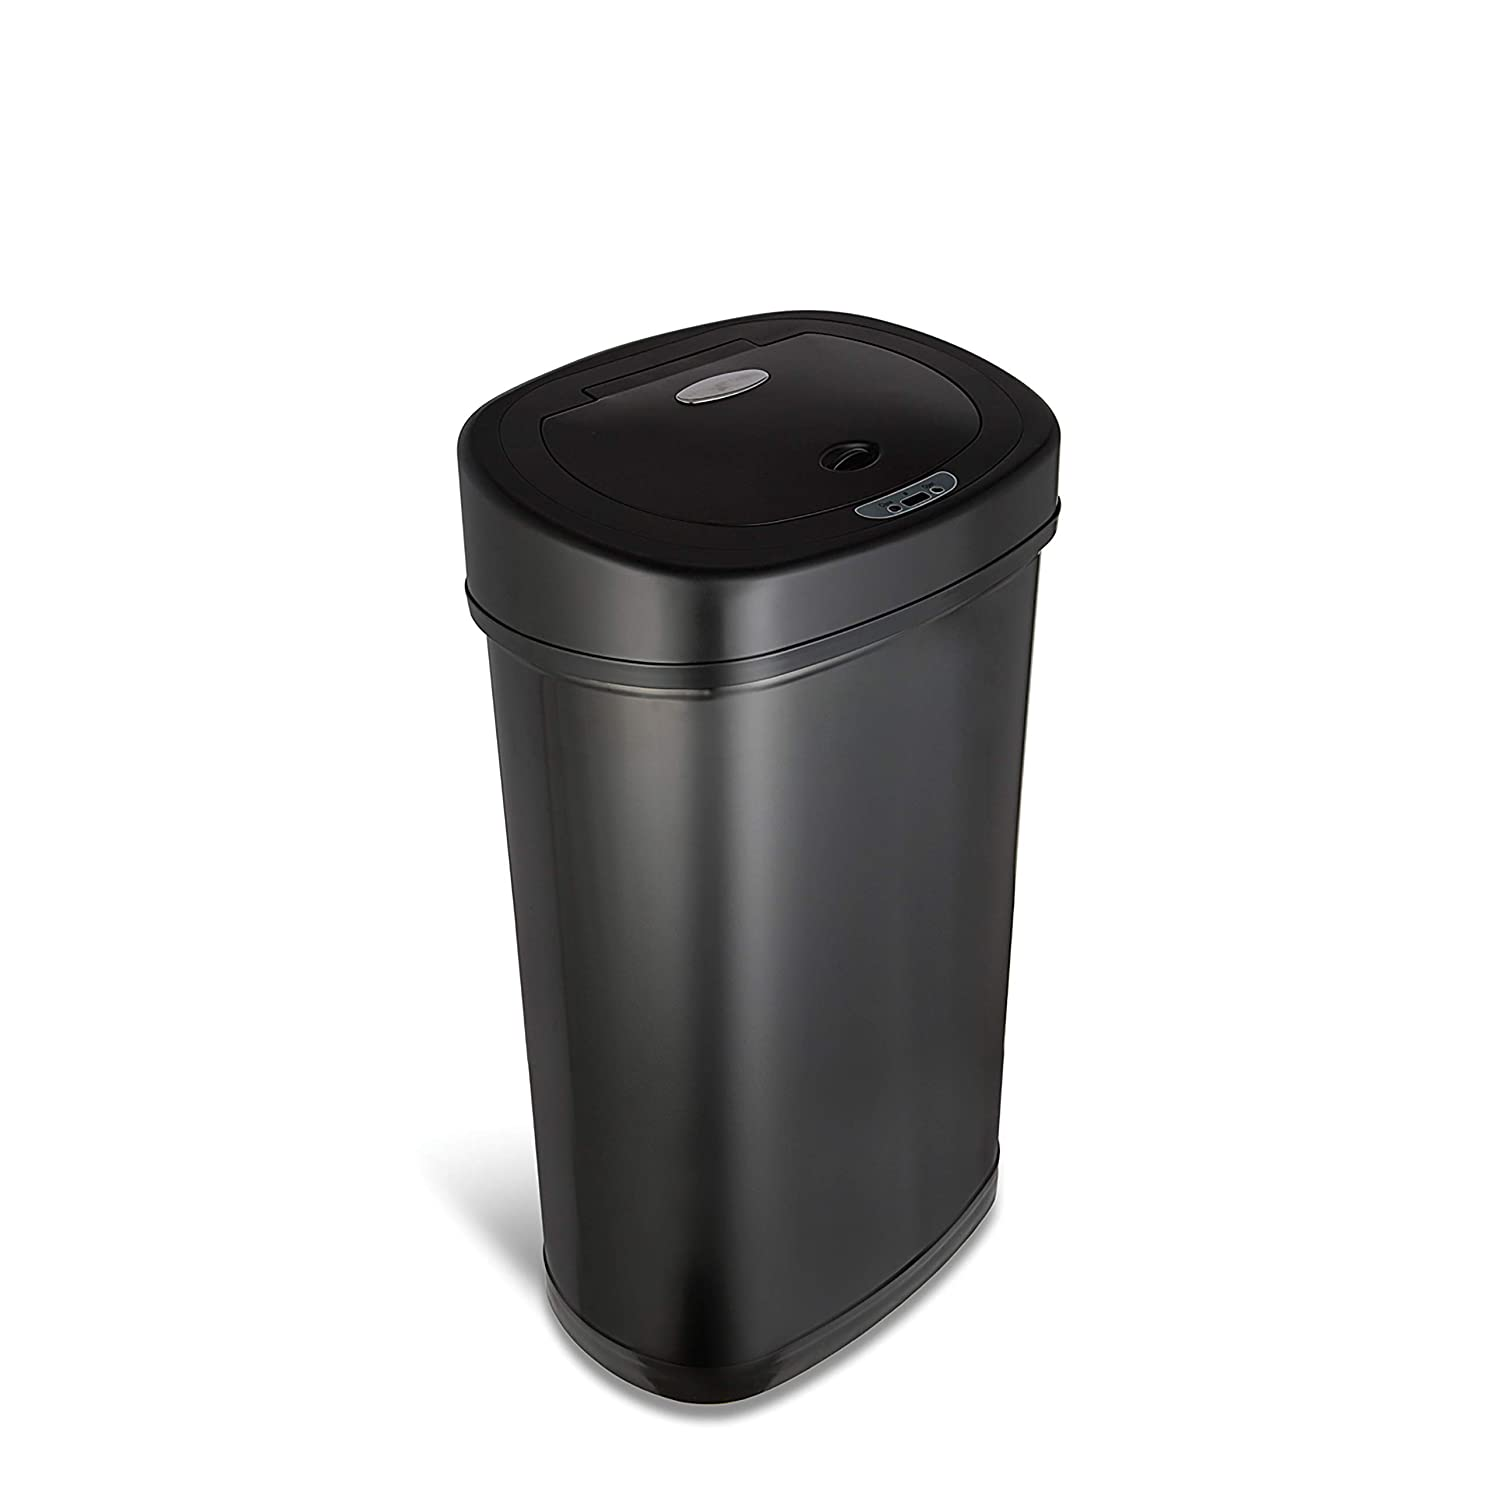 NINESTARS DZT-50-9BK Automatic Touchless Infrared Motion Sensor Trash Can, 13 Gal 50L, Black Steel Base (Oval, Black Lid)